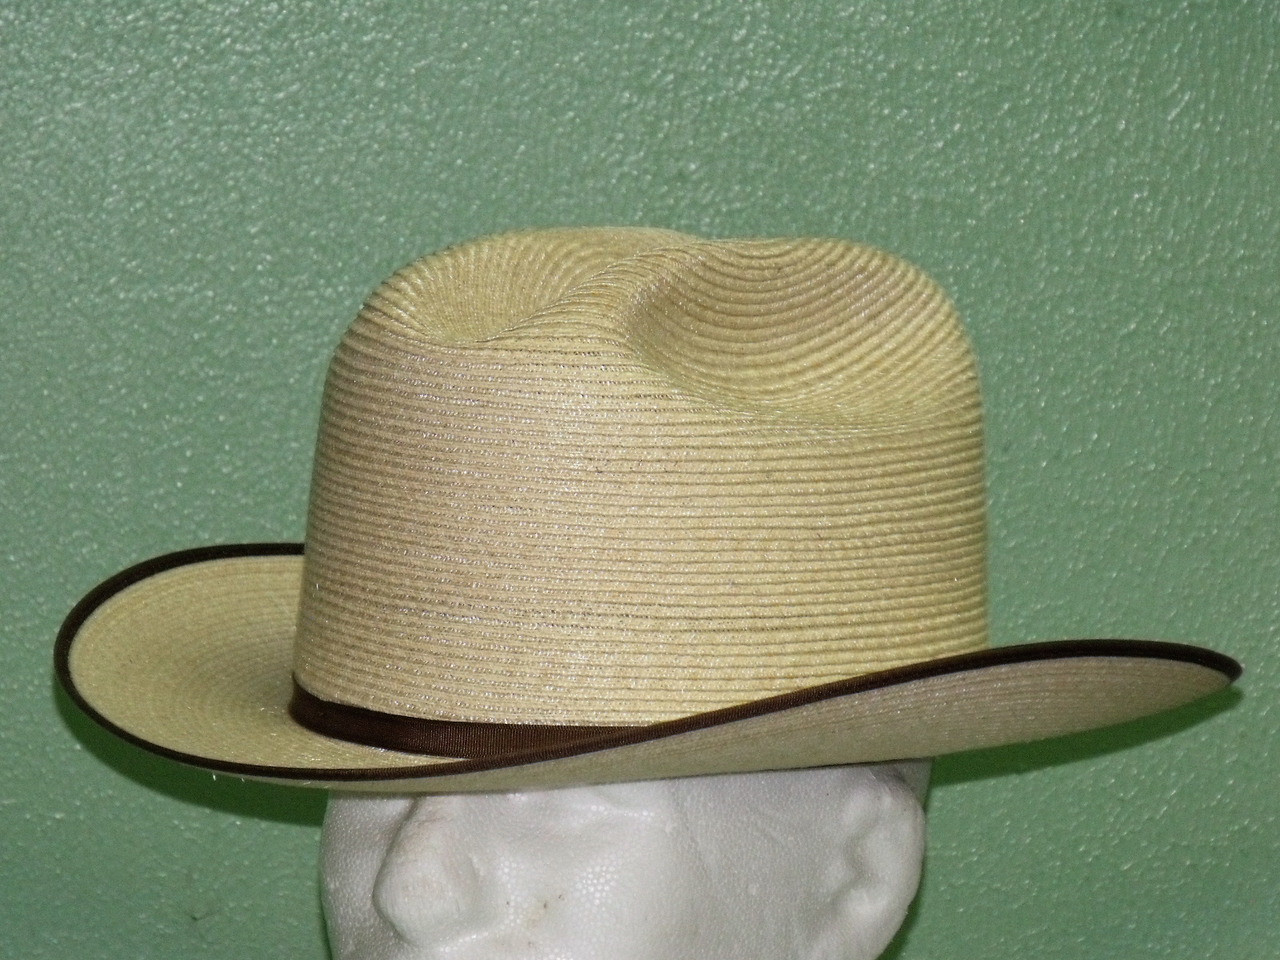 Stetson Woven Hemp Open Road Western Hat - One 2 mini Ranch 7191dad5a57e